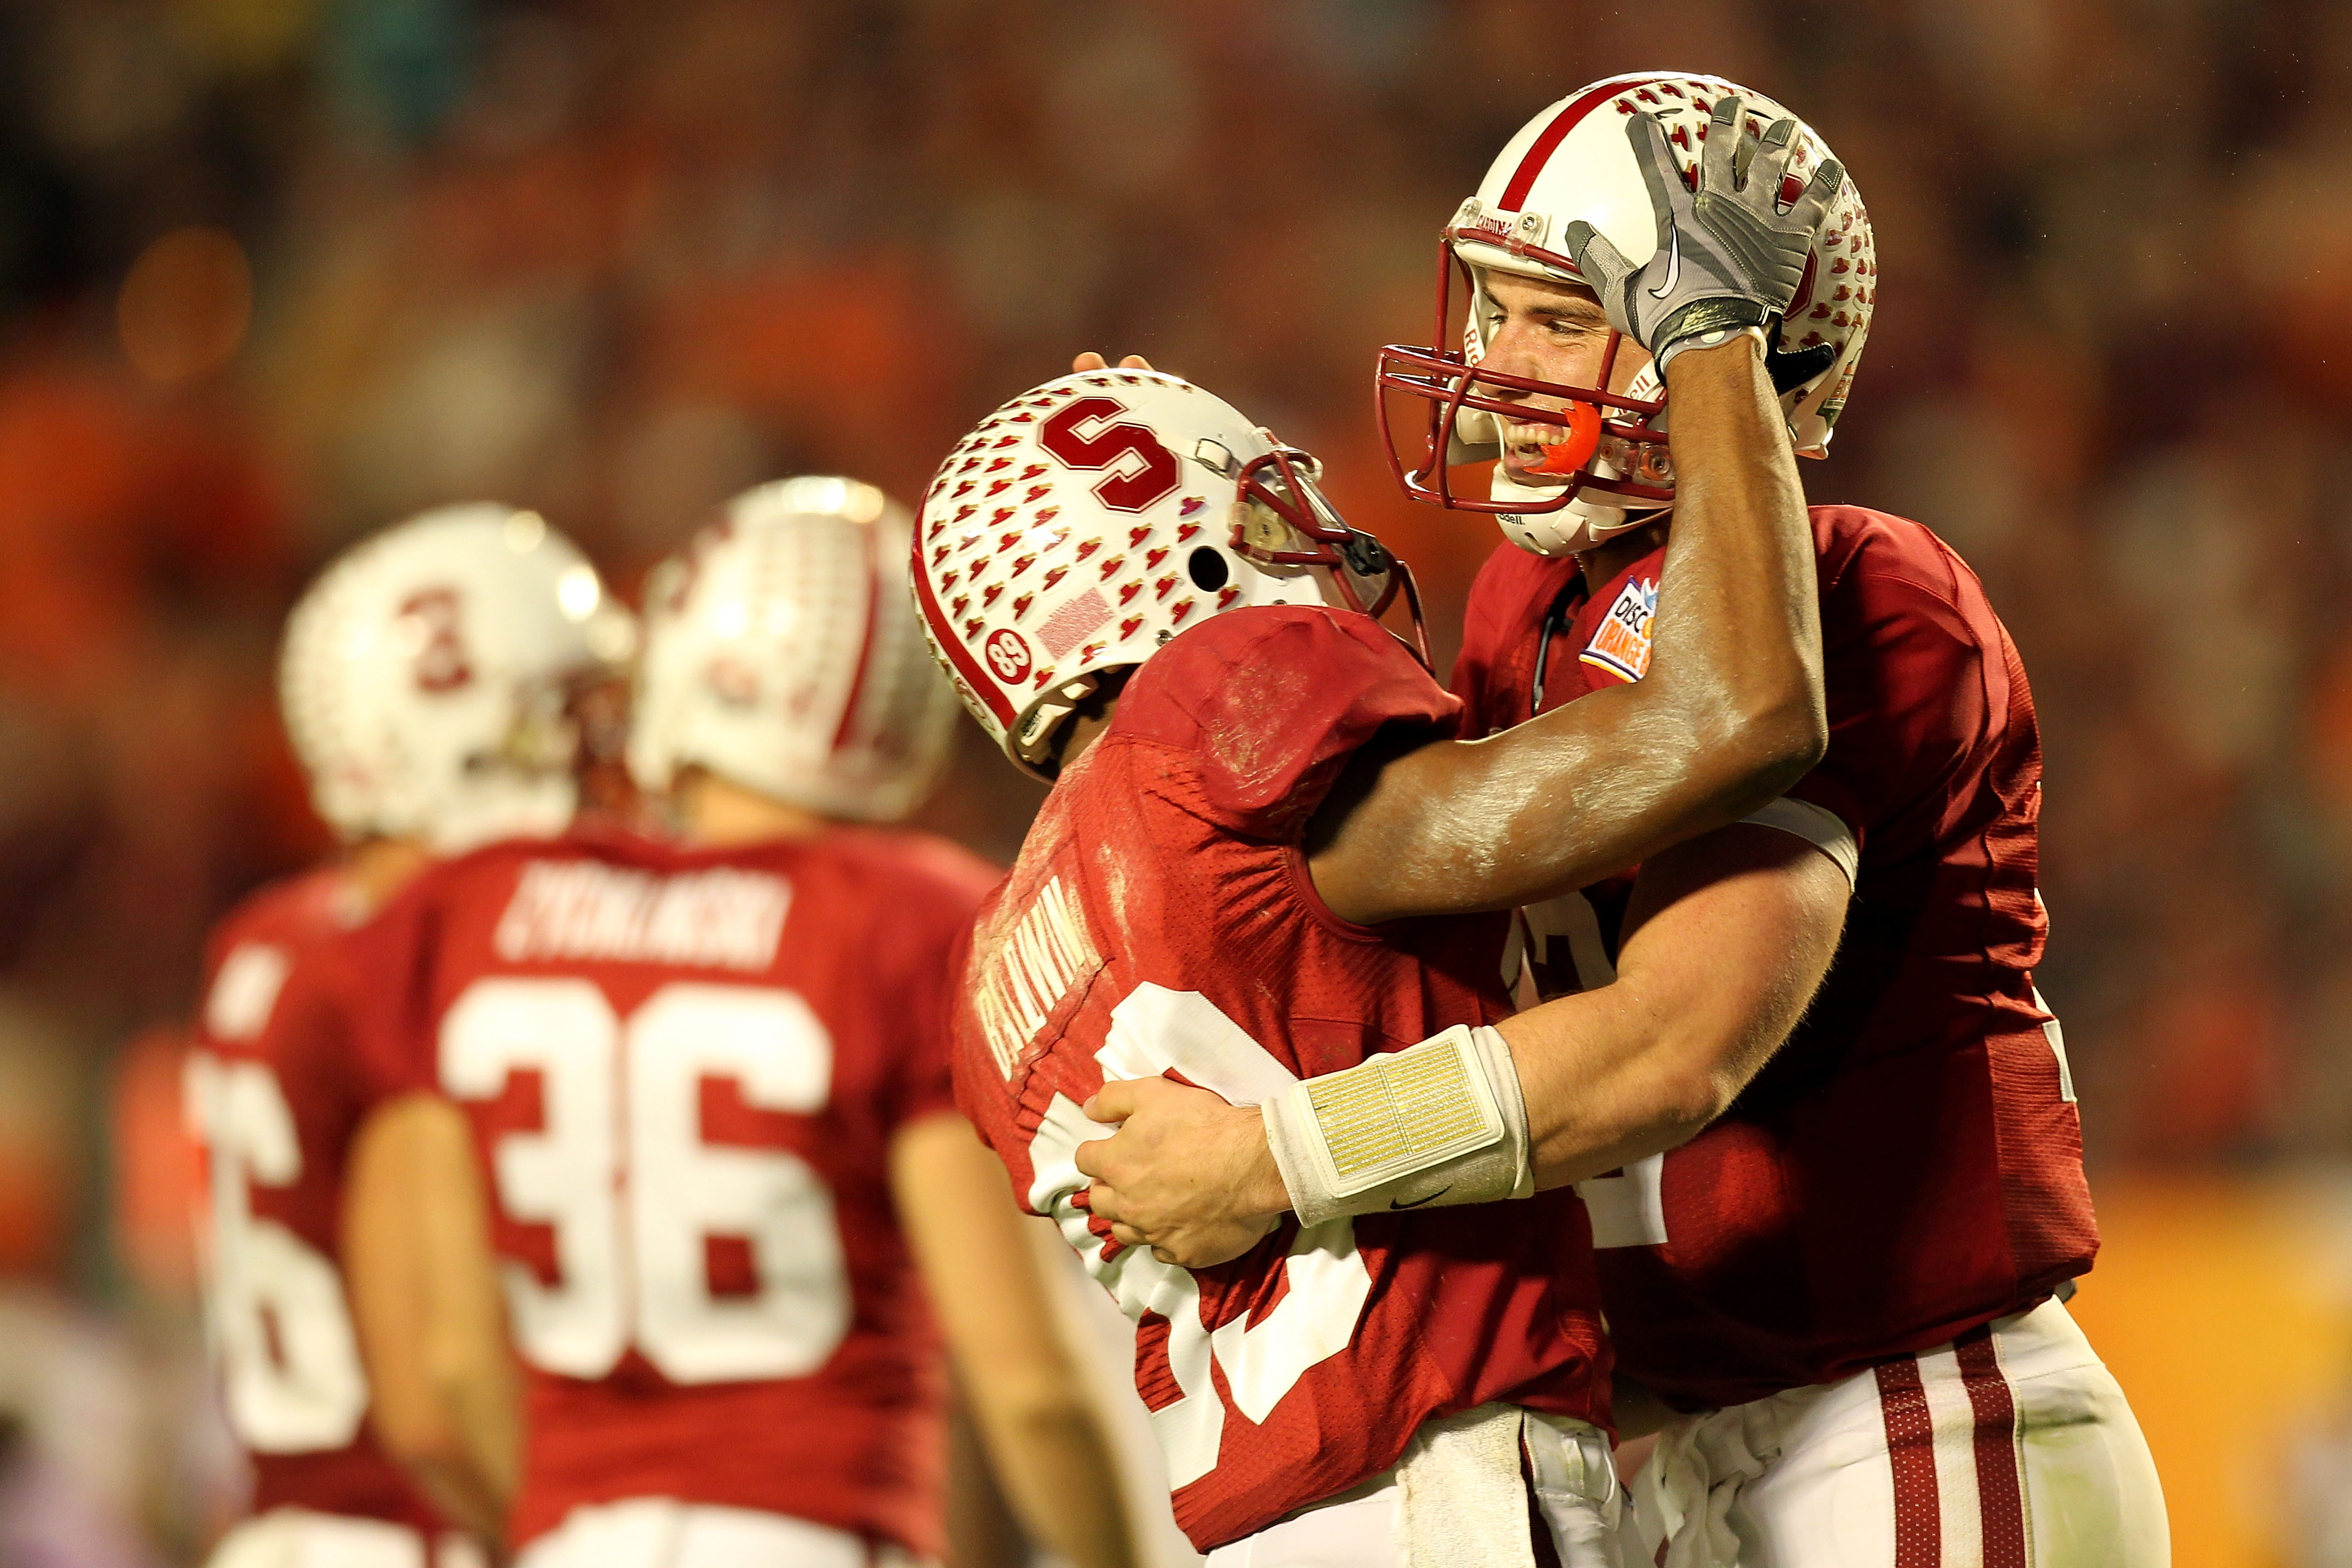 MIAMI, FL - JANUARY 03: Andrew Luck #12 (R) and Doug Baldwin #89 of the Stanford Cardinal celebrate after Luck threw a 41-yard touchdown pass to Coby Fleener #82 in the third quarter against the Virginia Tech Hokies during the 2011 Discover Orange Bowl at